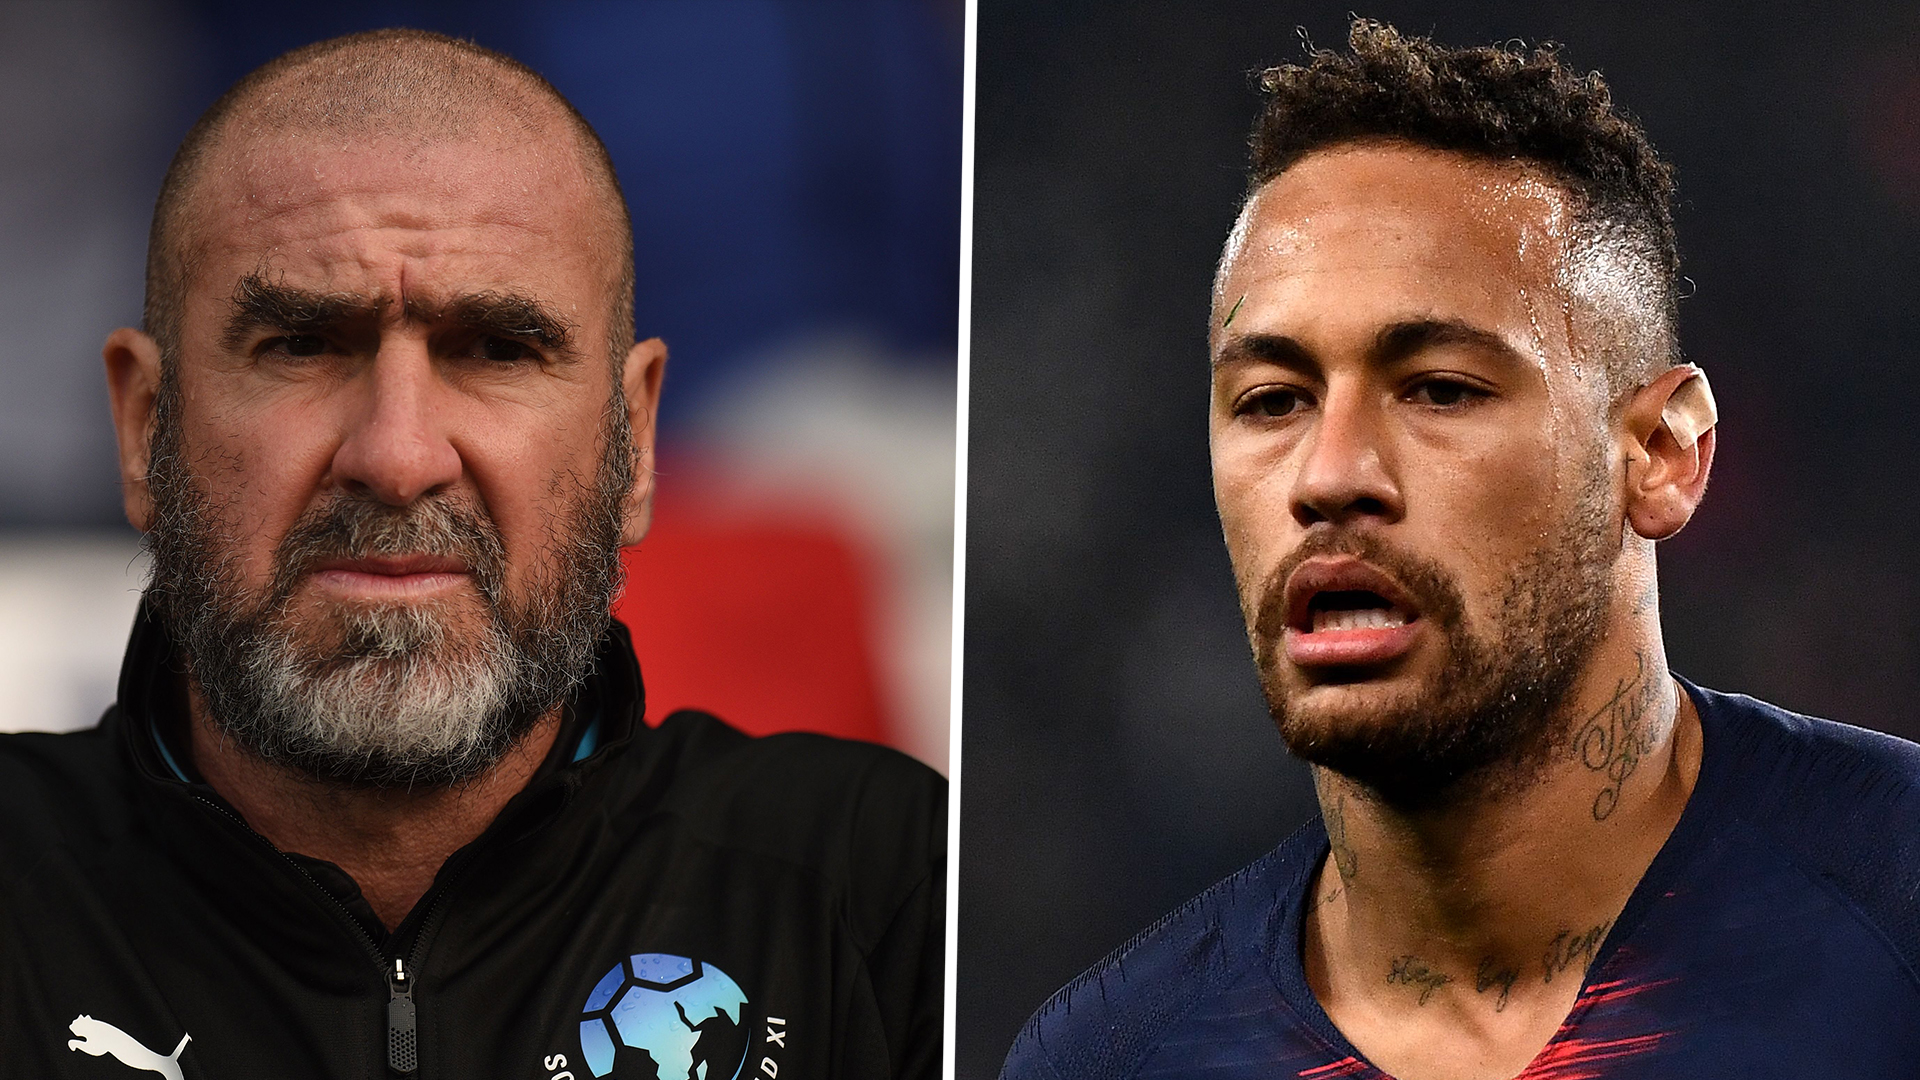 Neymar's 'flamboyant' hair during brazil's draw against switzerland on monday night was a big talking point in an otherwise disappointing. Man Utd News Eric Cantona Mocks Neymar On Social Media Days After Heated Altercation With His Dad In Psg Clash Goal Com